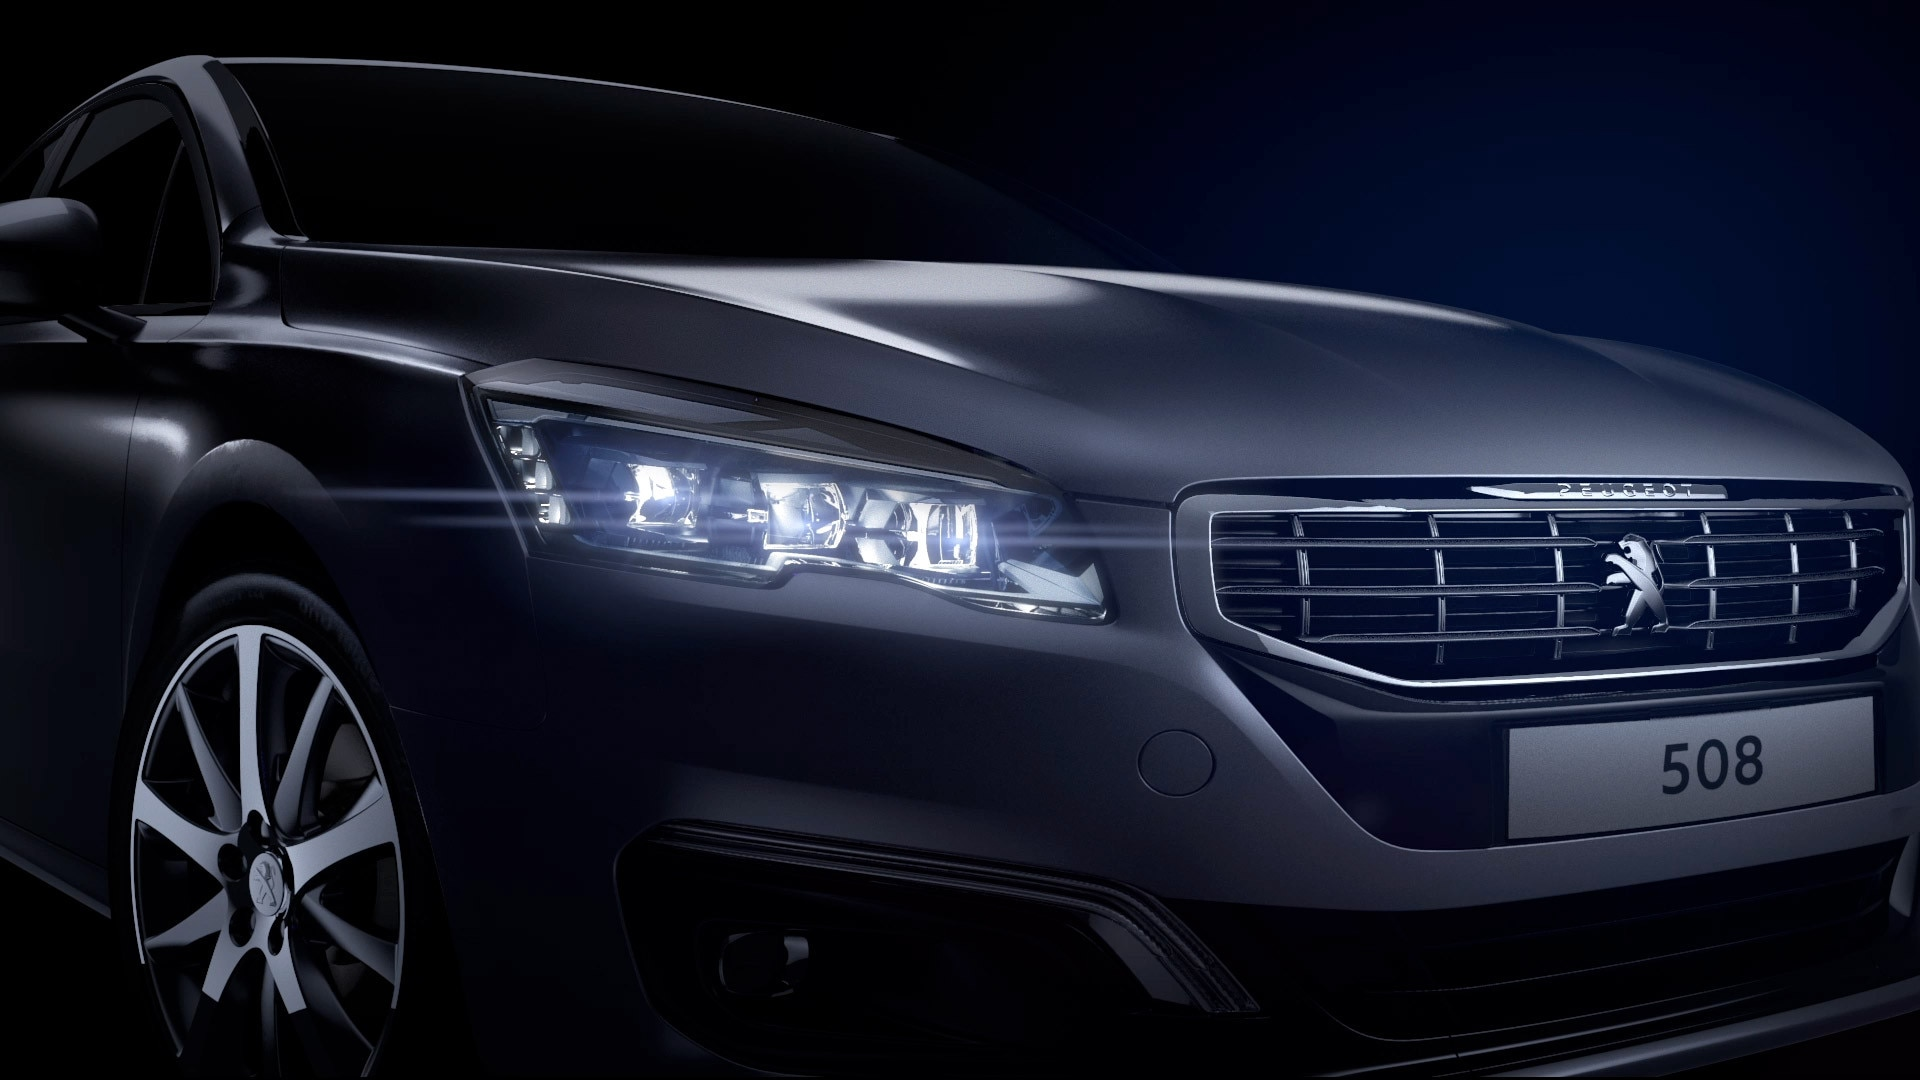 peugeot 508 saloon new 5 door family touring executive car. Black Bedroom Furniture Sets. Home Design Ideas